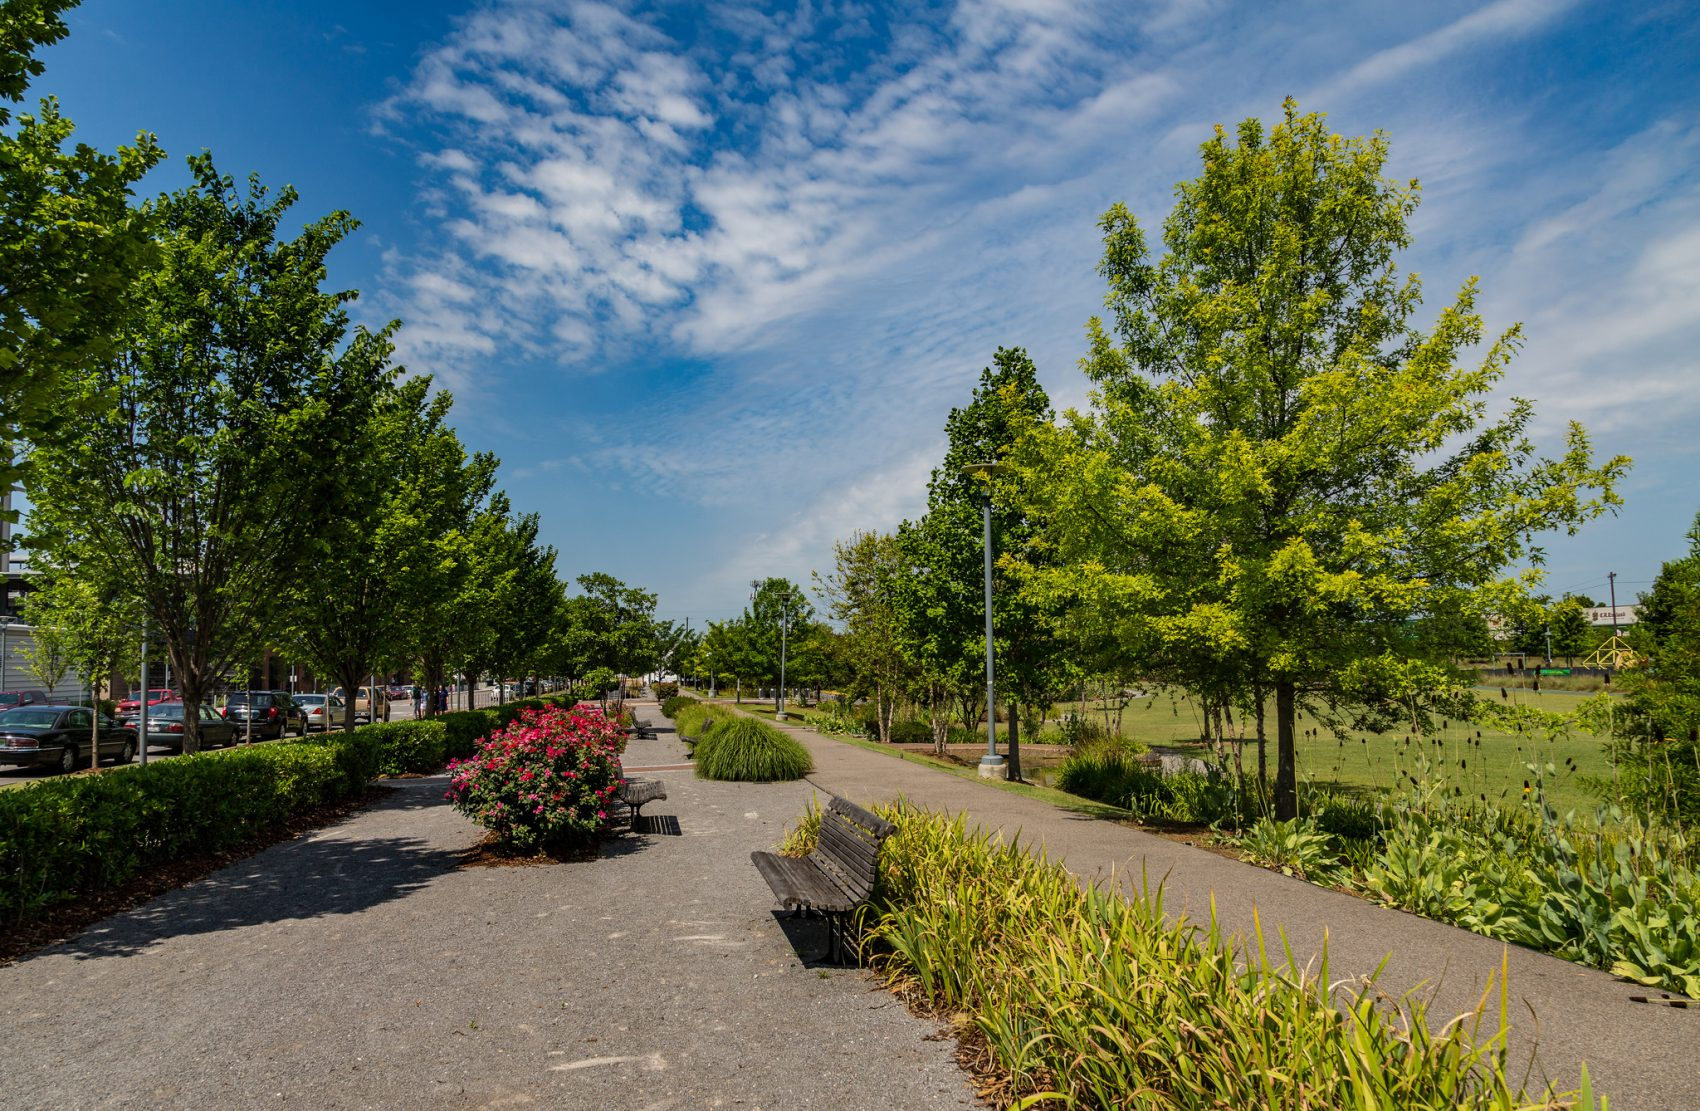 Railroad Park in Birmingham, Ala. The park was built over a former rail yard in the city center. (Tony Webster/Flickr)